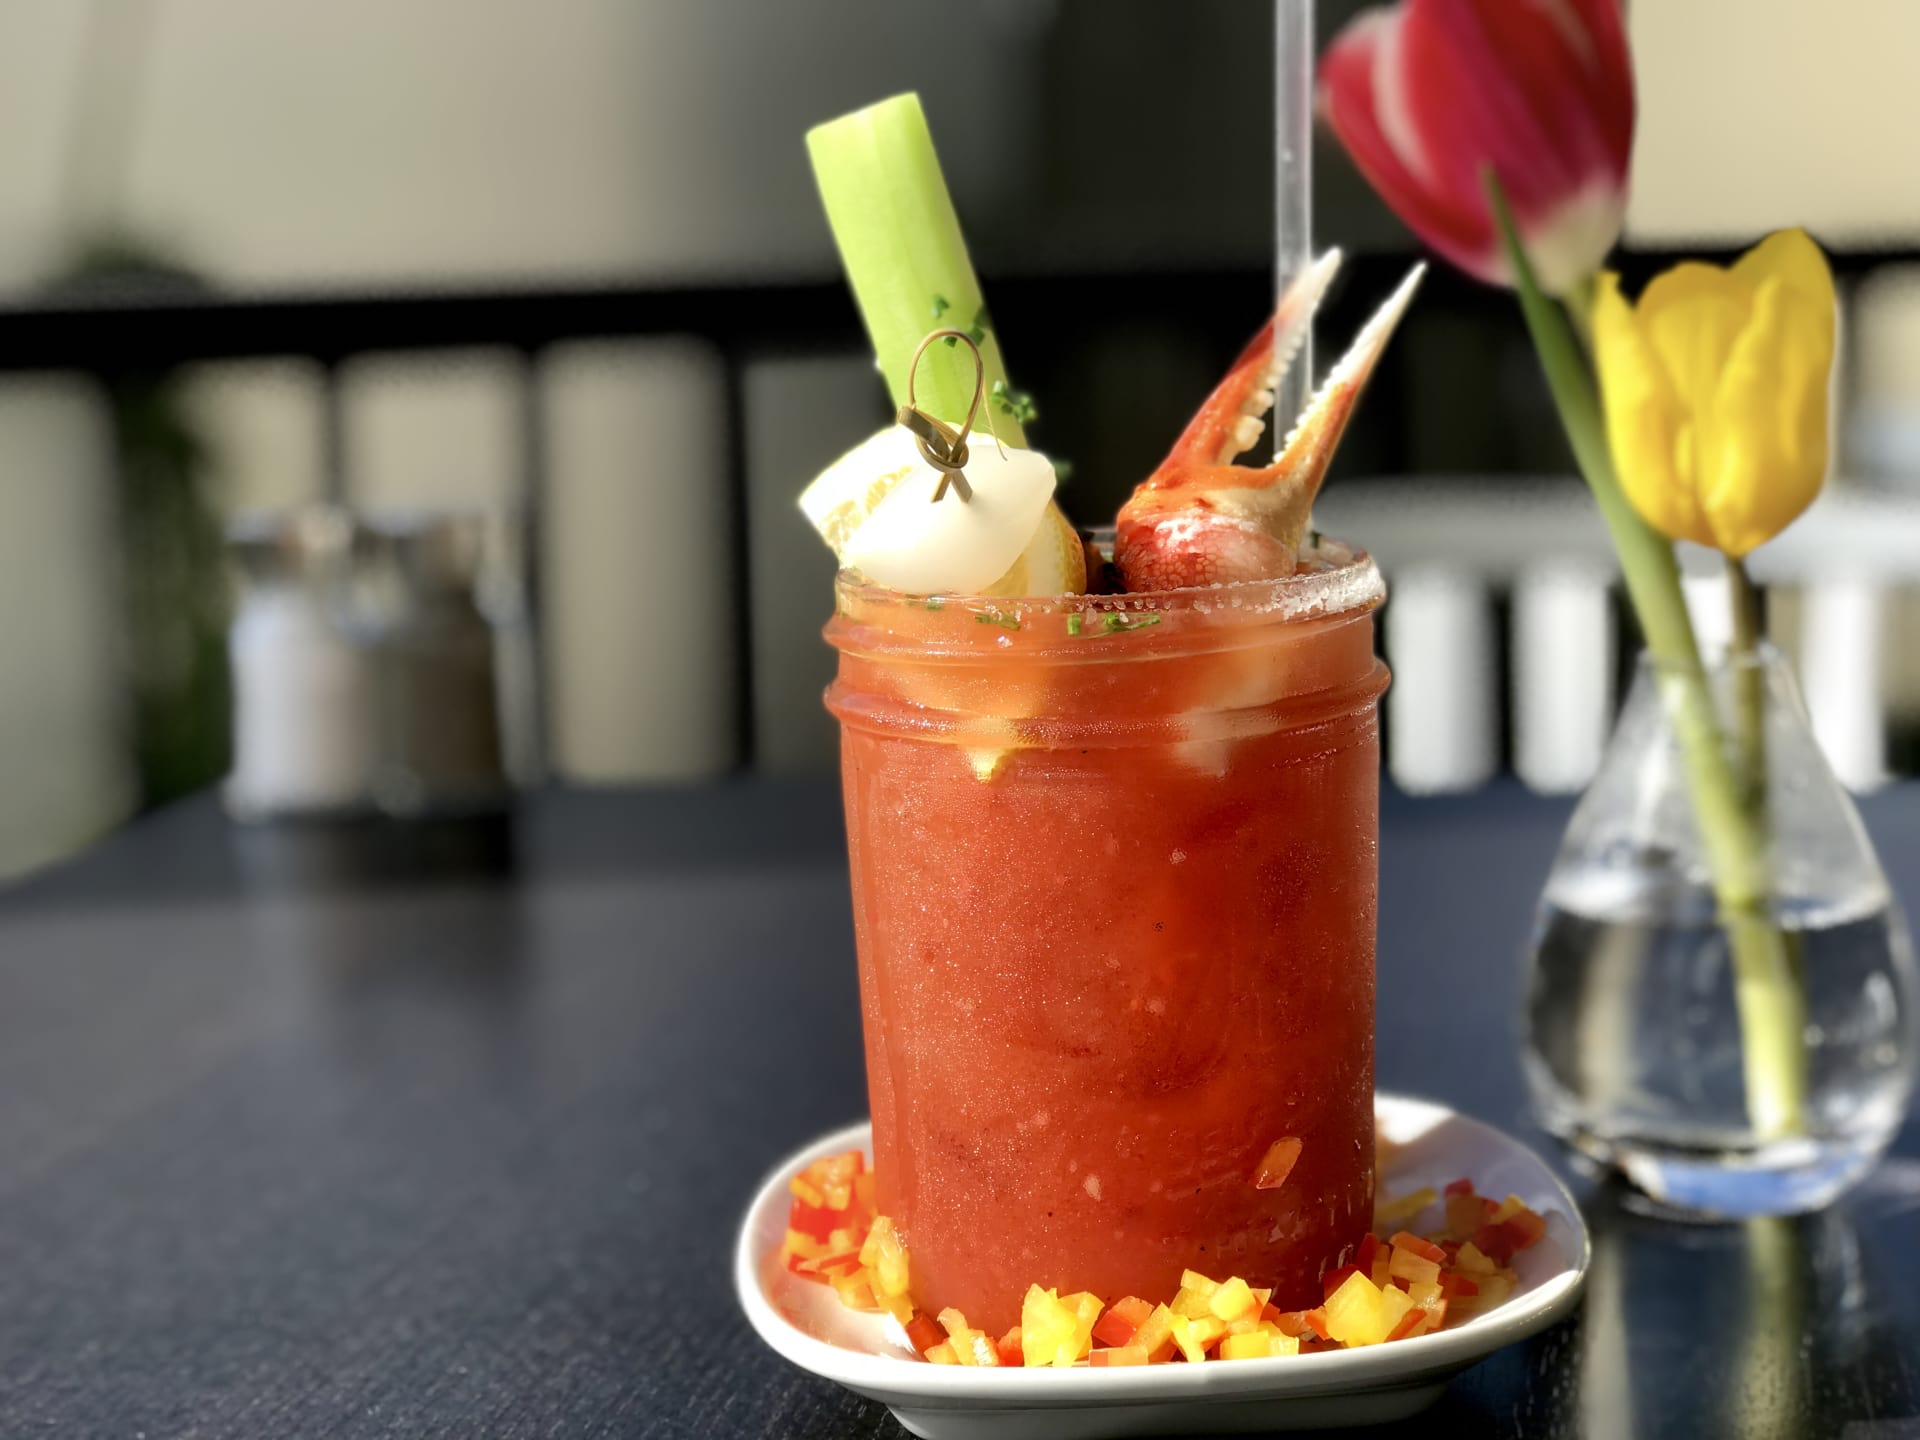 Tupelo's Bloody Mary